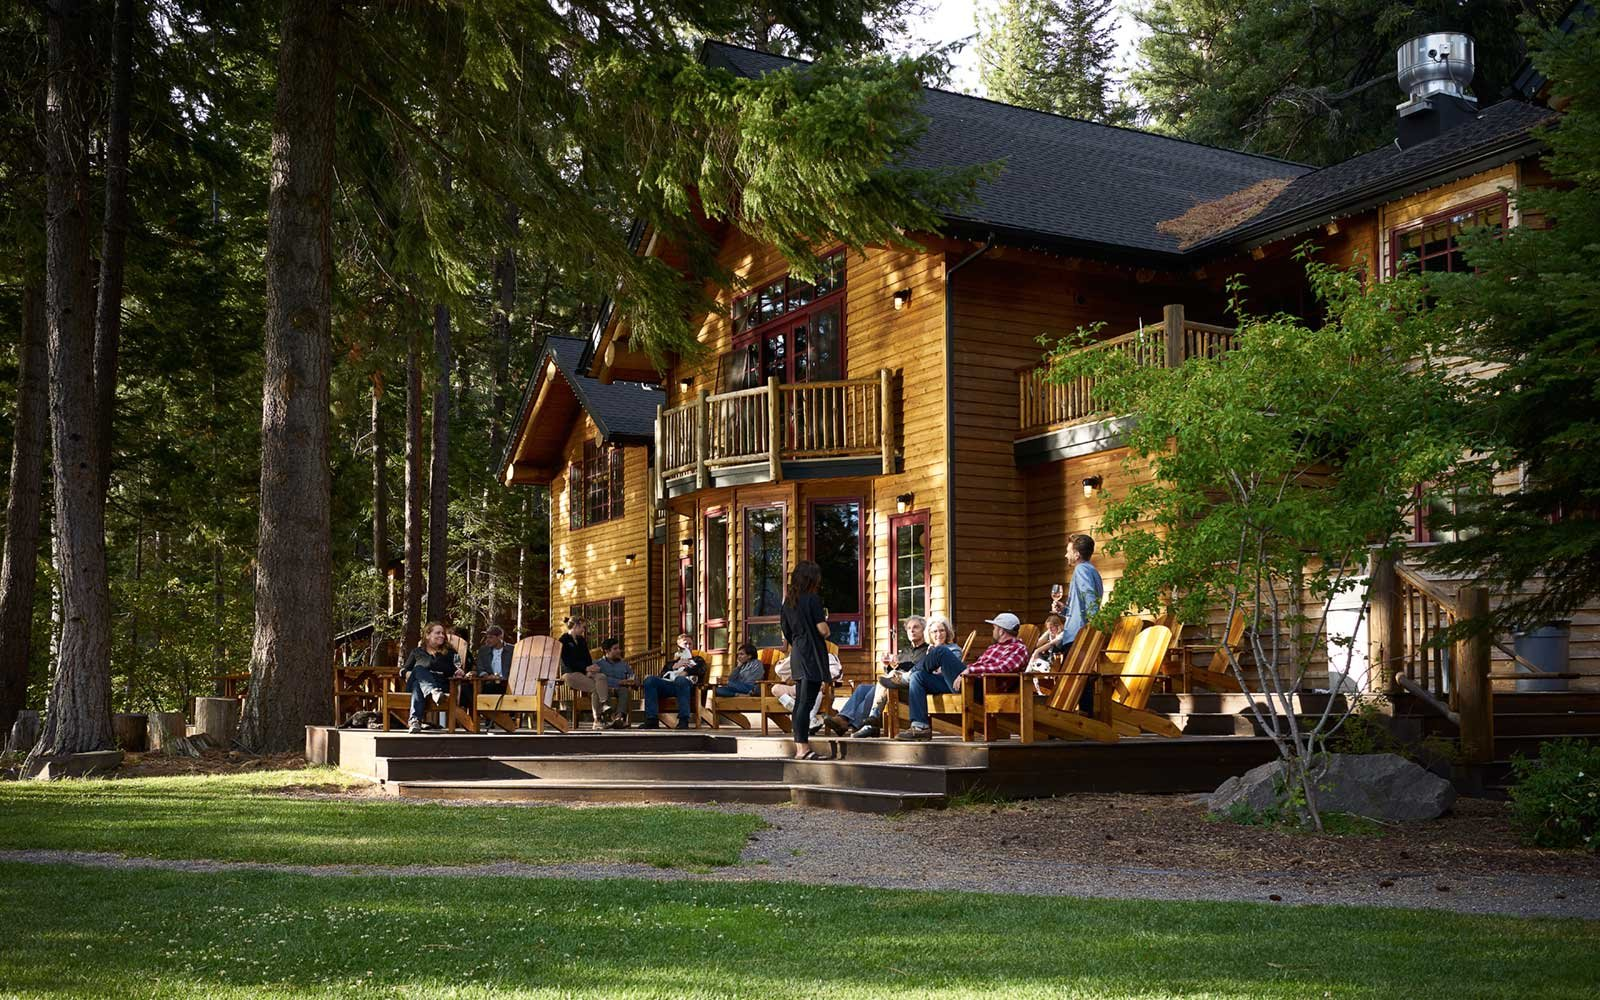 The Suttle Lodge, Oregon